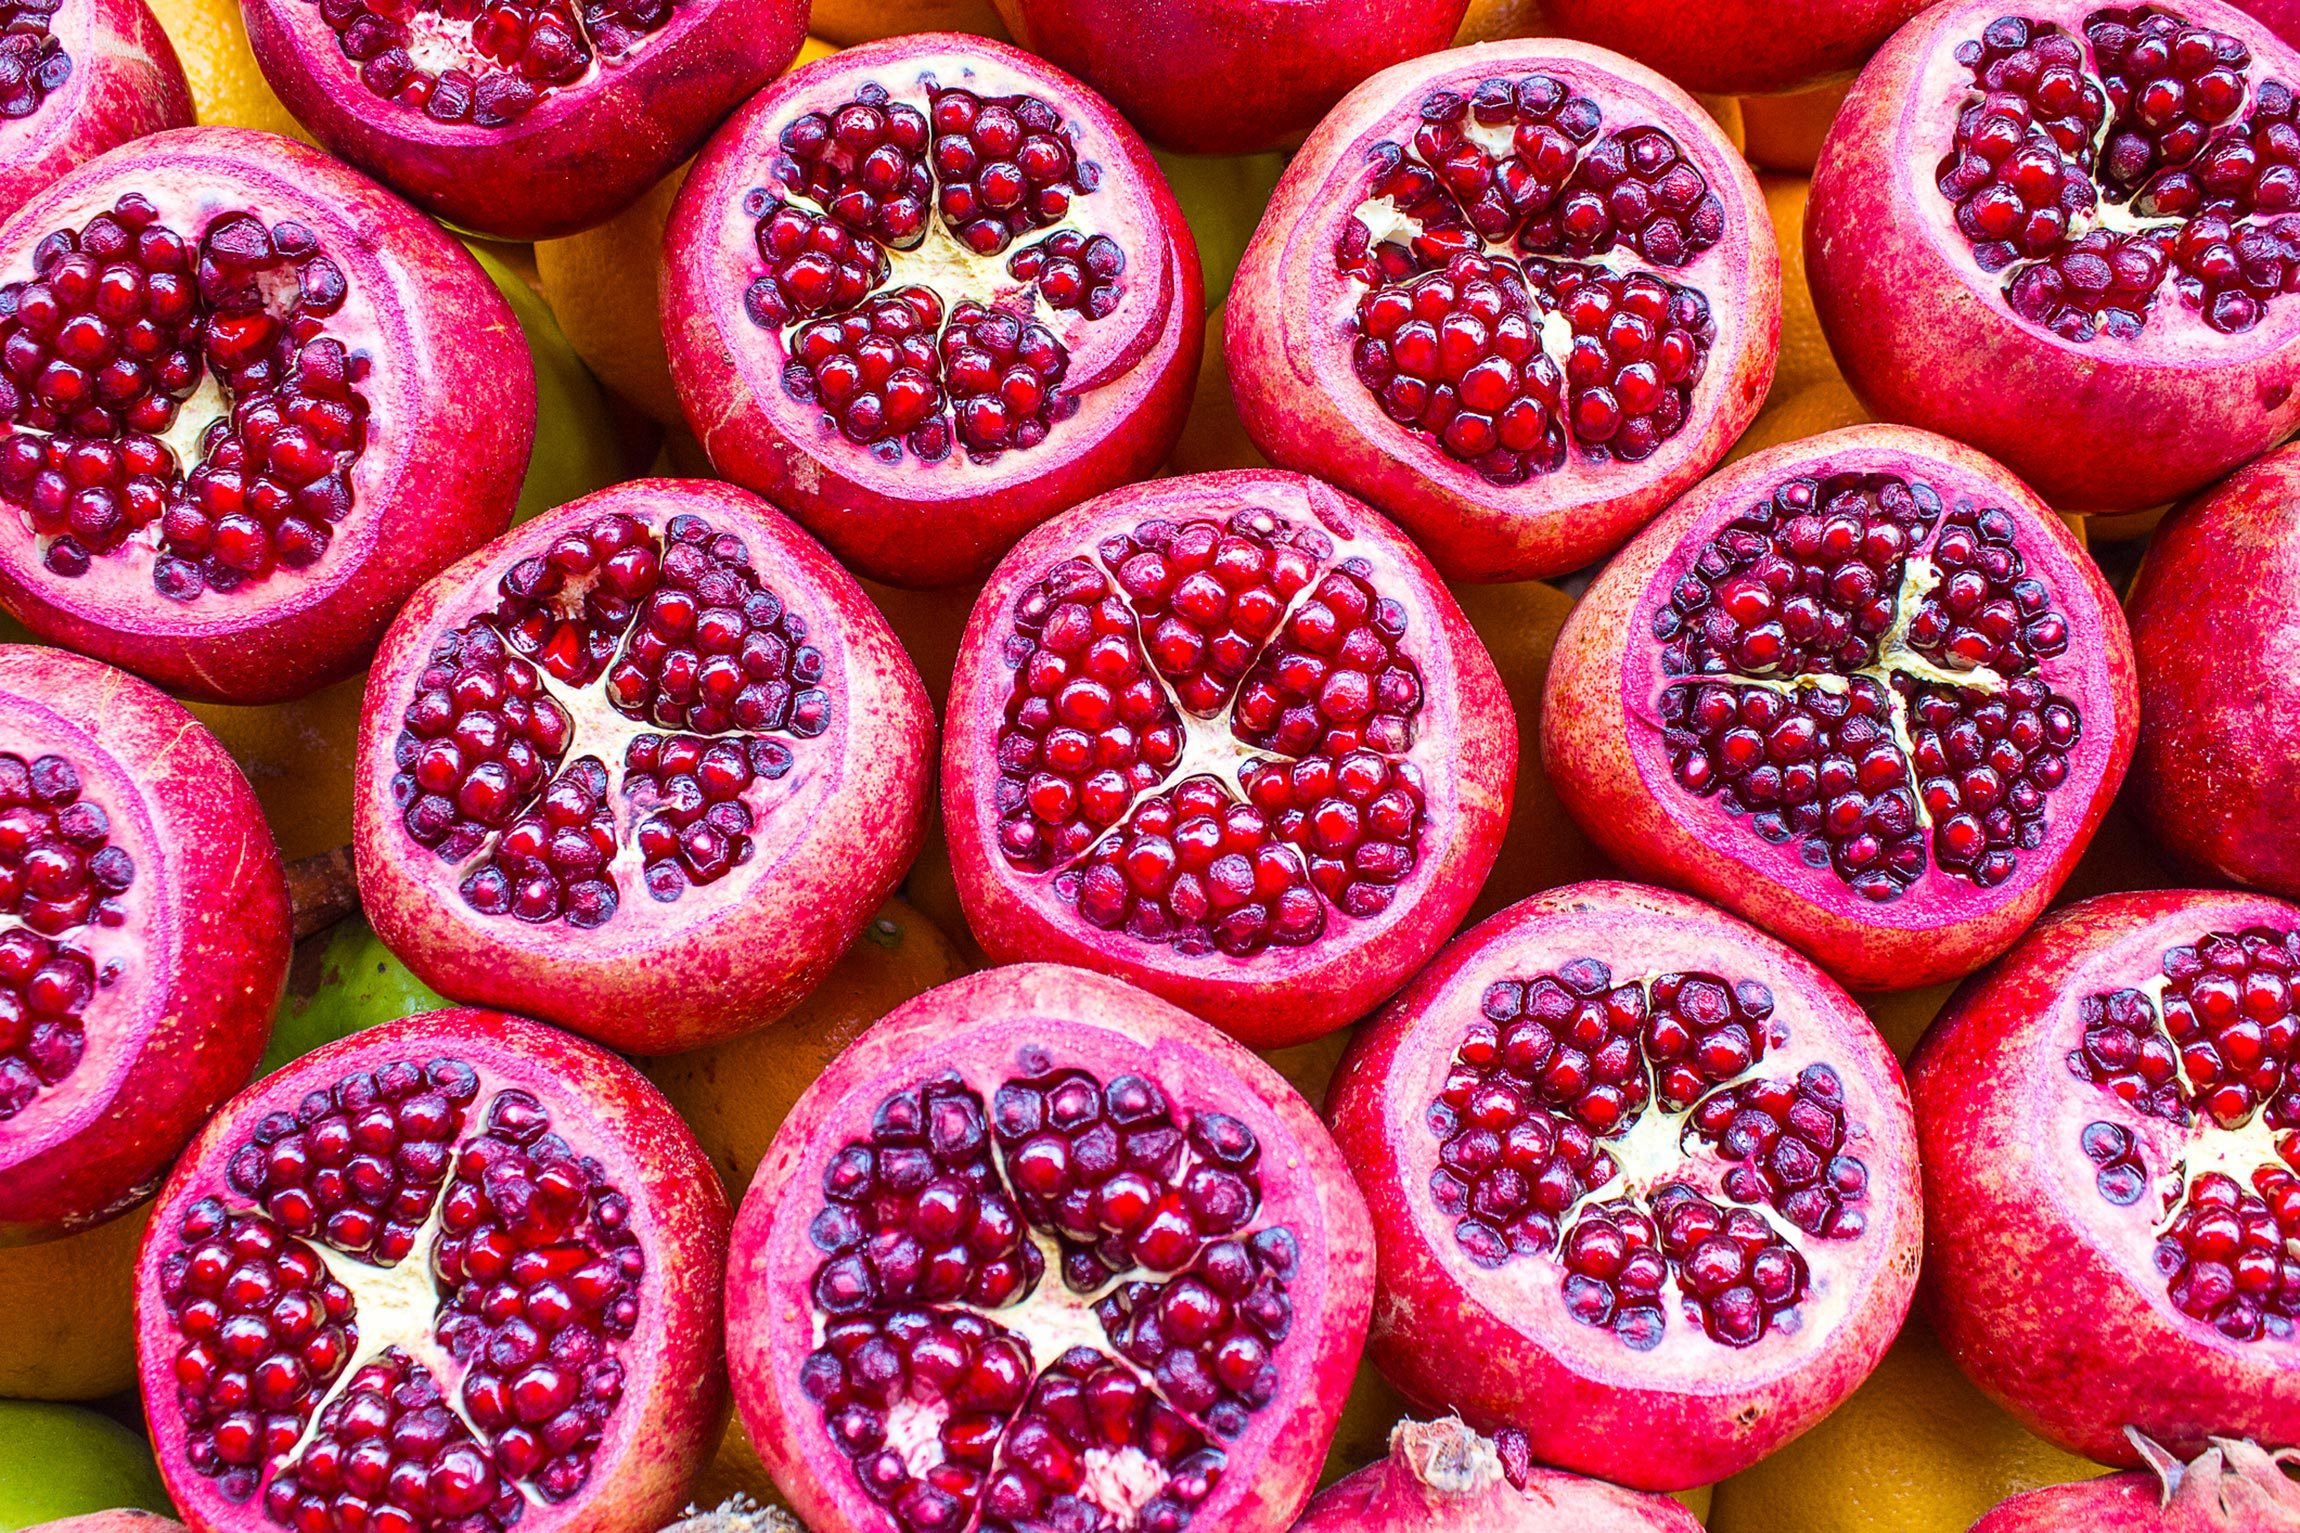 Foods for healthy skin - pomegranates